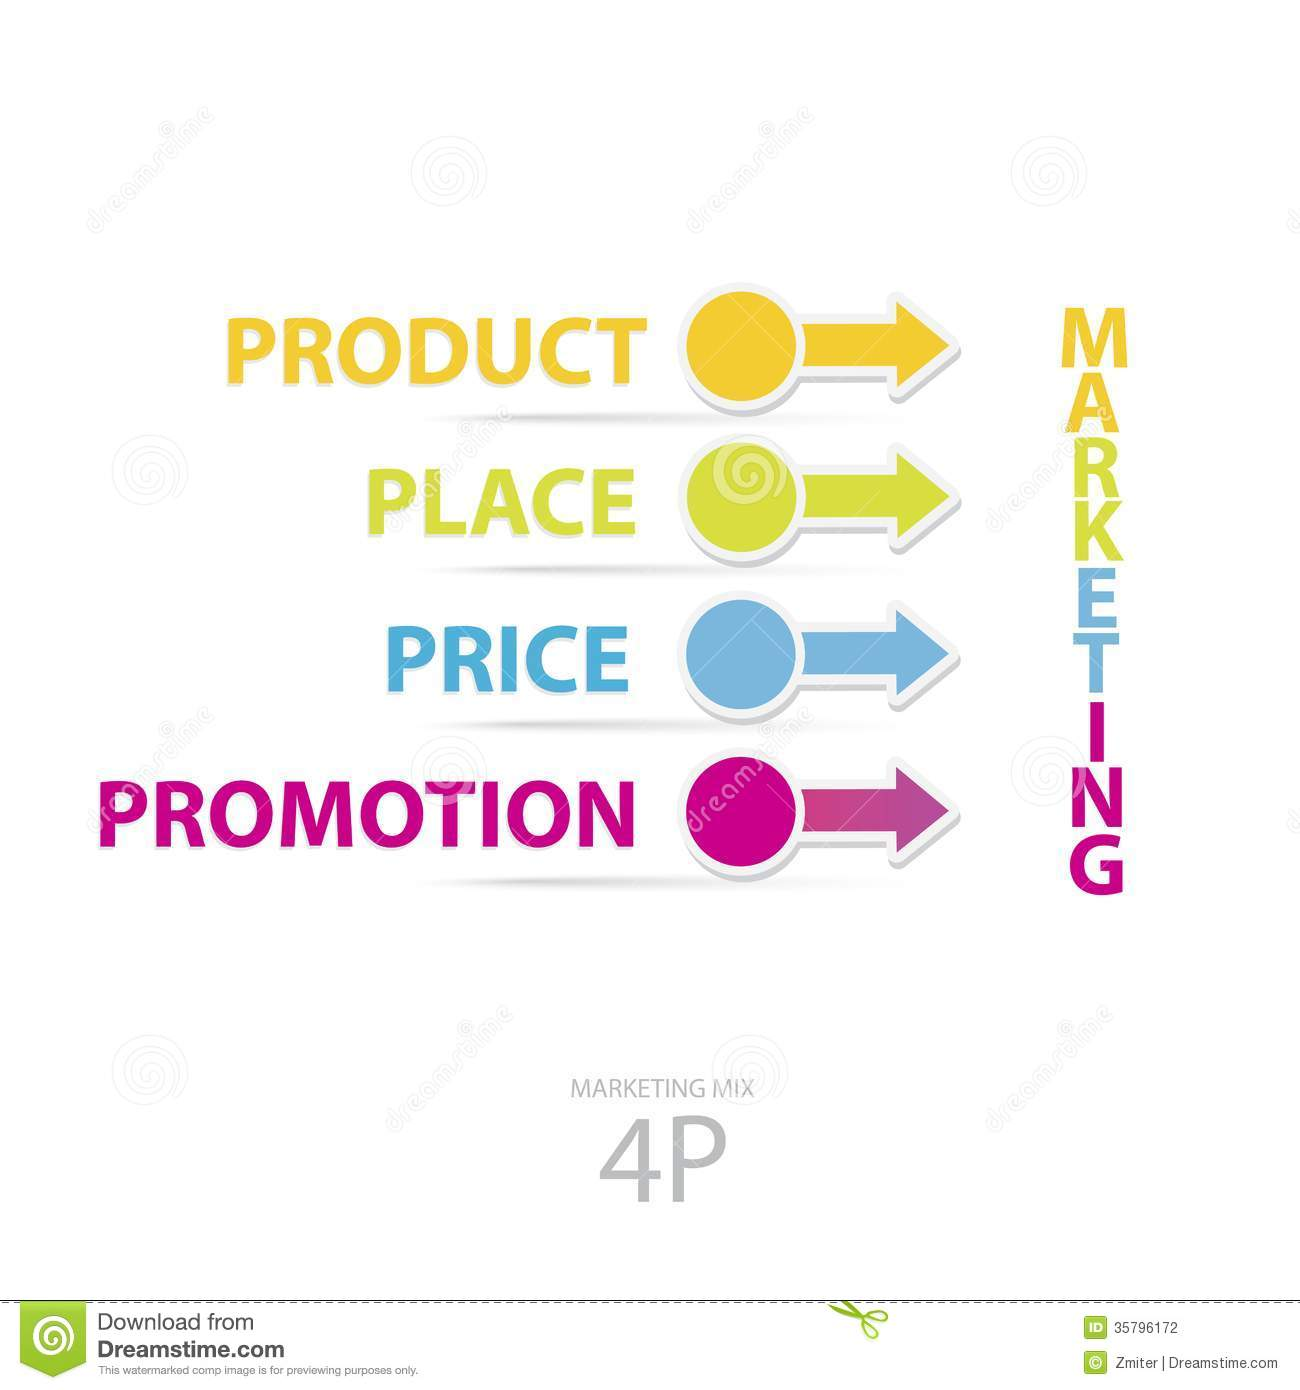 idea cellular product price place promotion Dipp permission required as part of merger between idea cellular  earnings  products  the department of industrial policy and promotion (dipp), is  considering idea cellular ltd's proposal to  over fy18-20e, and (b) ~36%  reduction in data rates from fy18e to  equity/currency & commodity/spot.